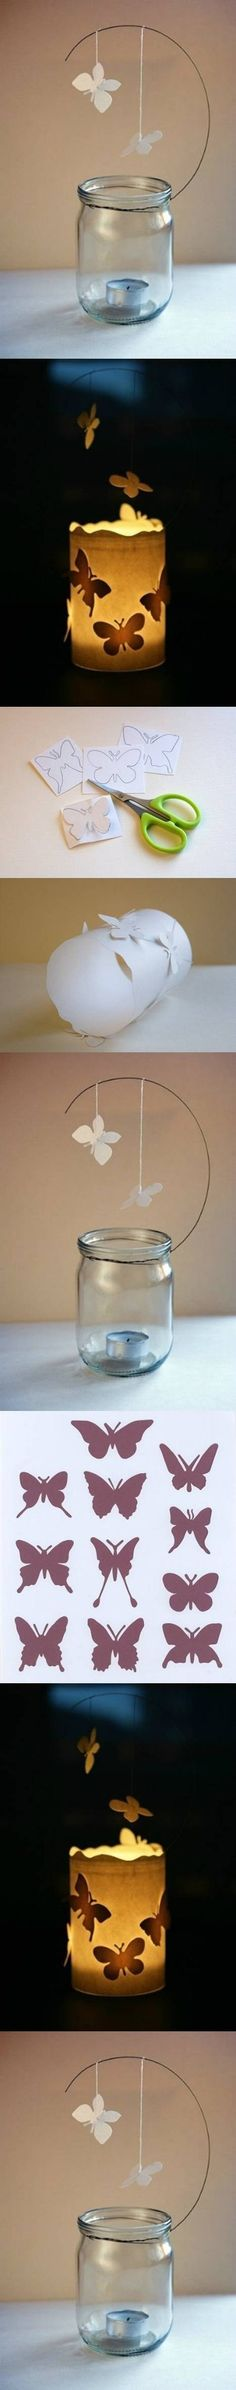 DIY Butterfly Candle Decor Ideas DIY Butterfly Candle Decor Ideas by diyforever